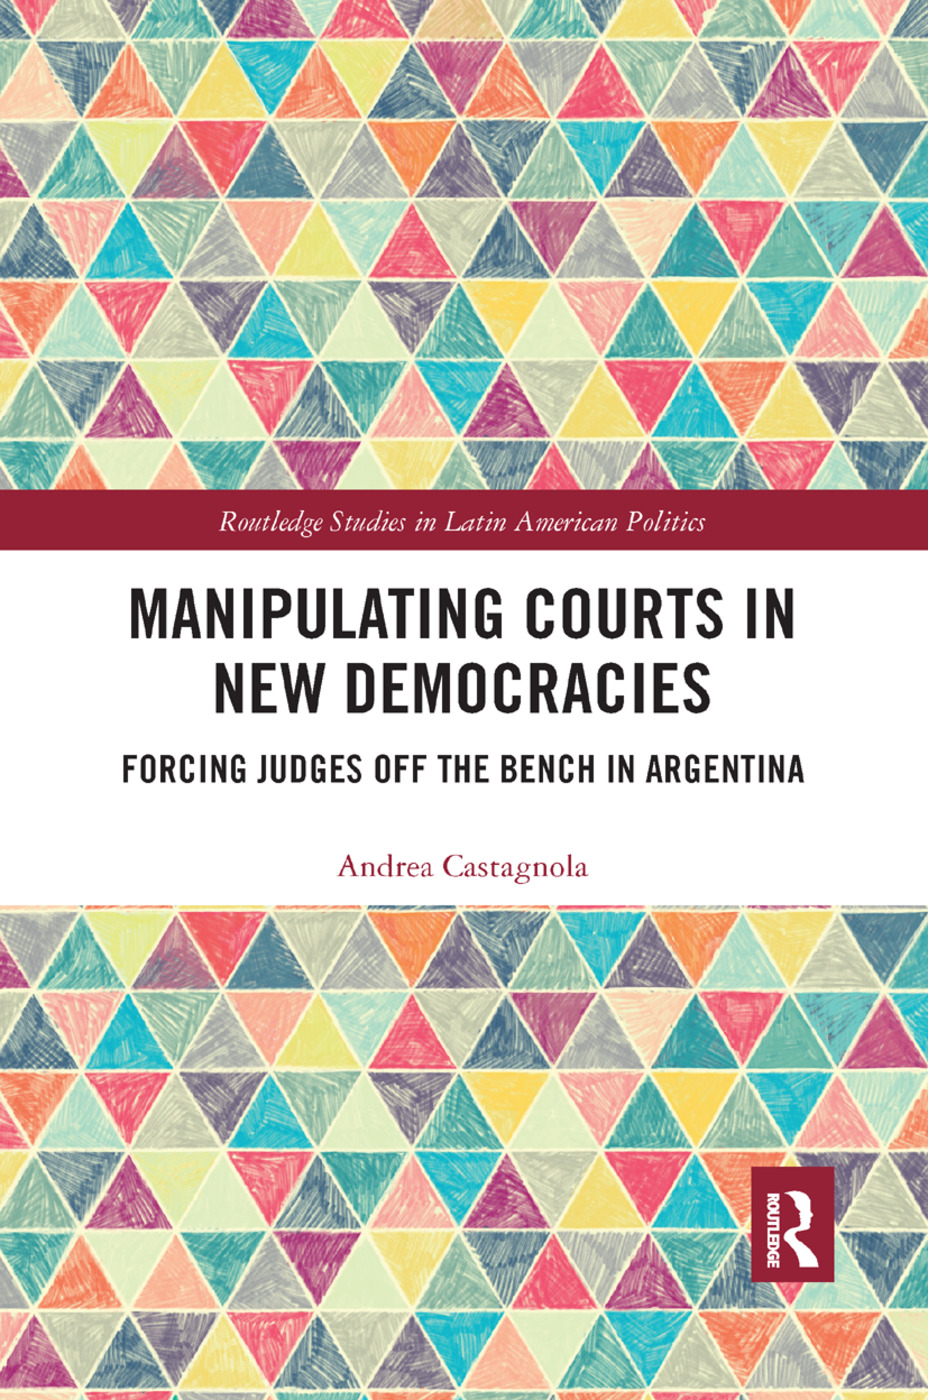 Manipulating Courts in New Democracies: Forcing Judges off the Bench in Argentina book cover